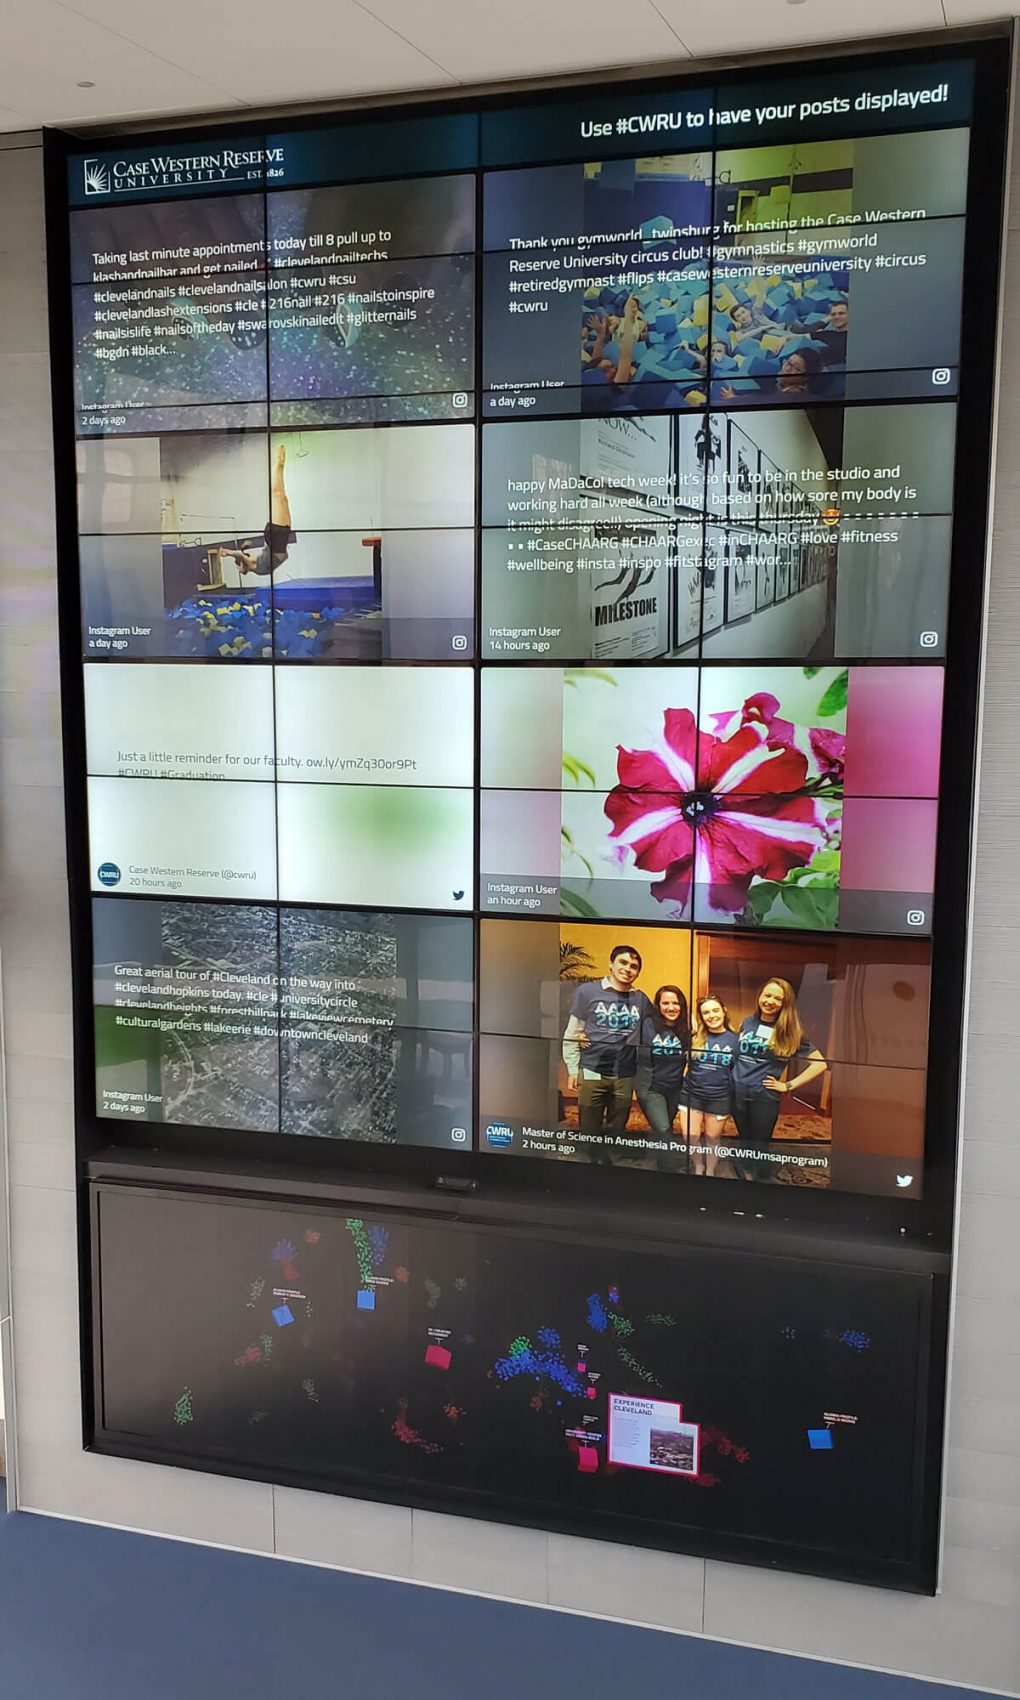 A closer shot of the Tink media wall at Case Western University, showing the social walls on the top part of the wall, called the Beacon.